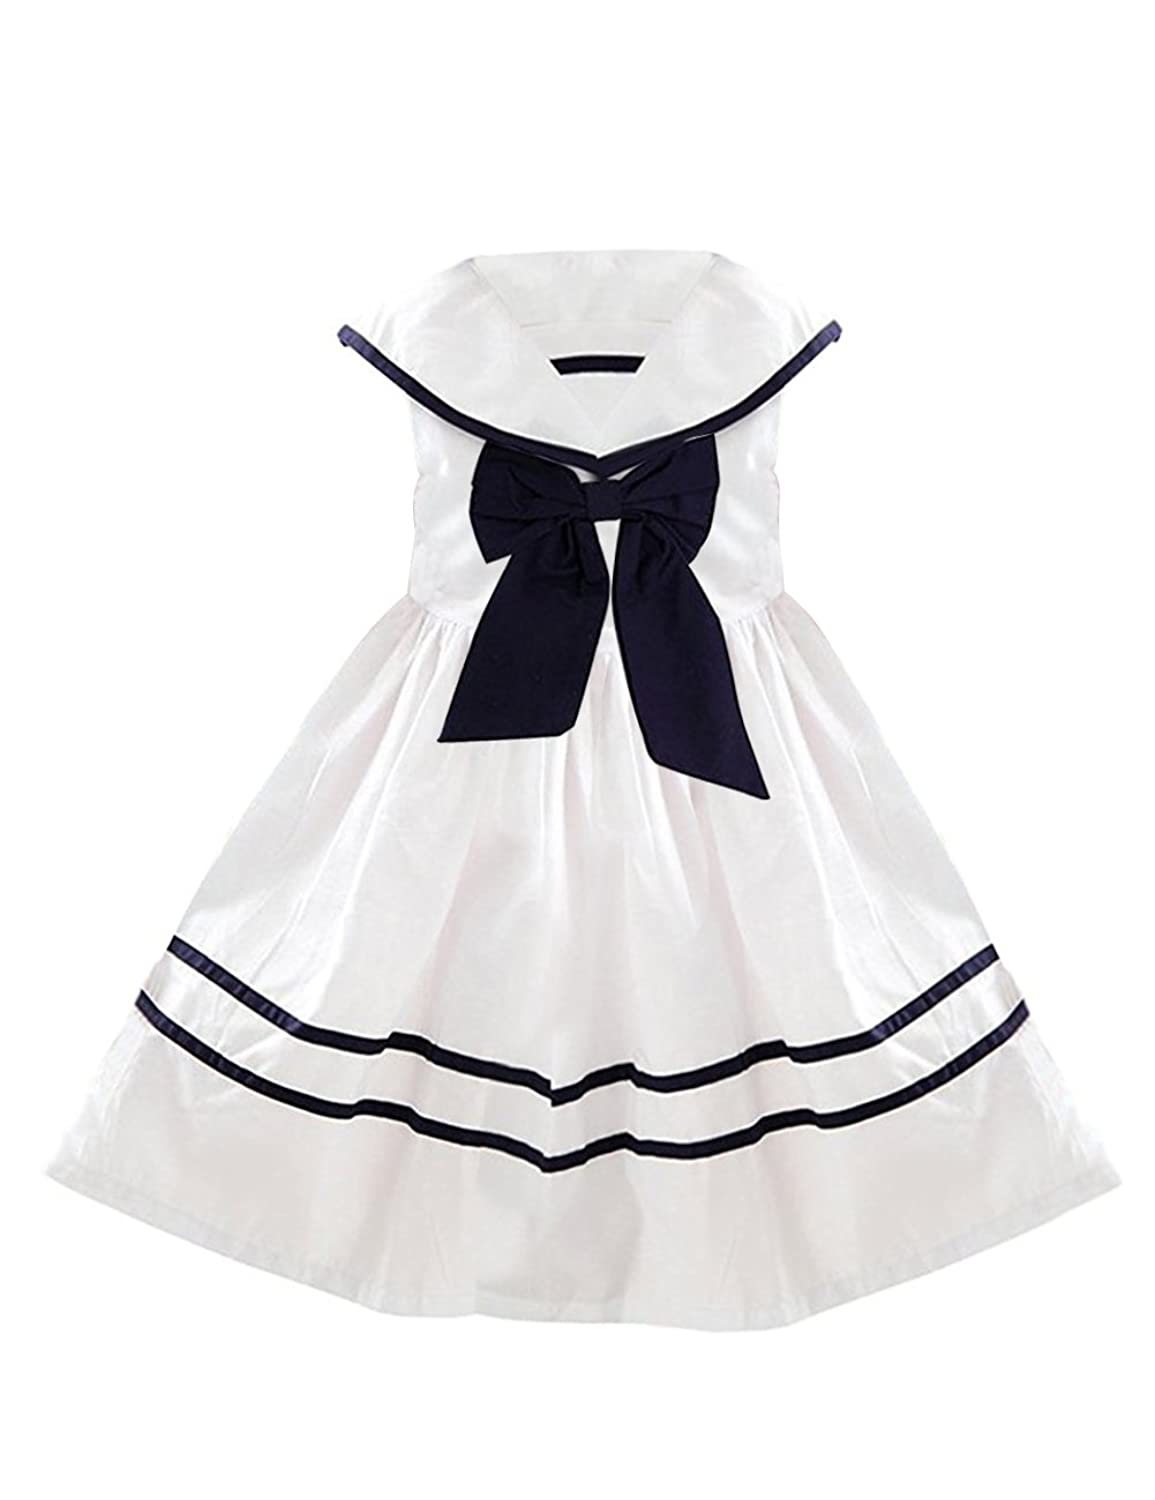 1920s Children Fashions: Girls, Boys, Baby Costumes YJ.GWL Girl Nautical Dress Collar Sailor Dress with Bow-Tie $17.99 AT vintagedancer.com